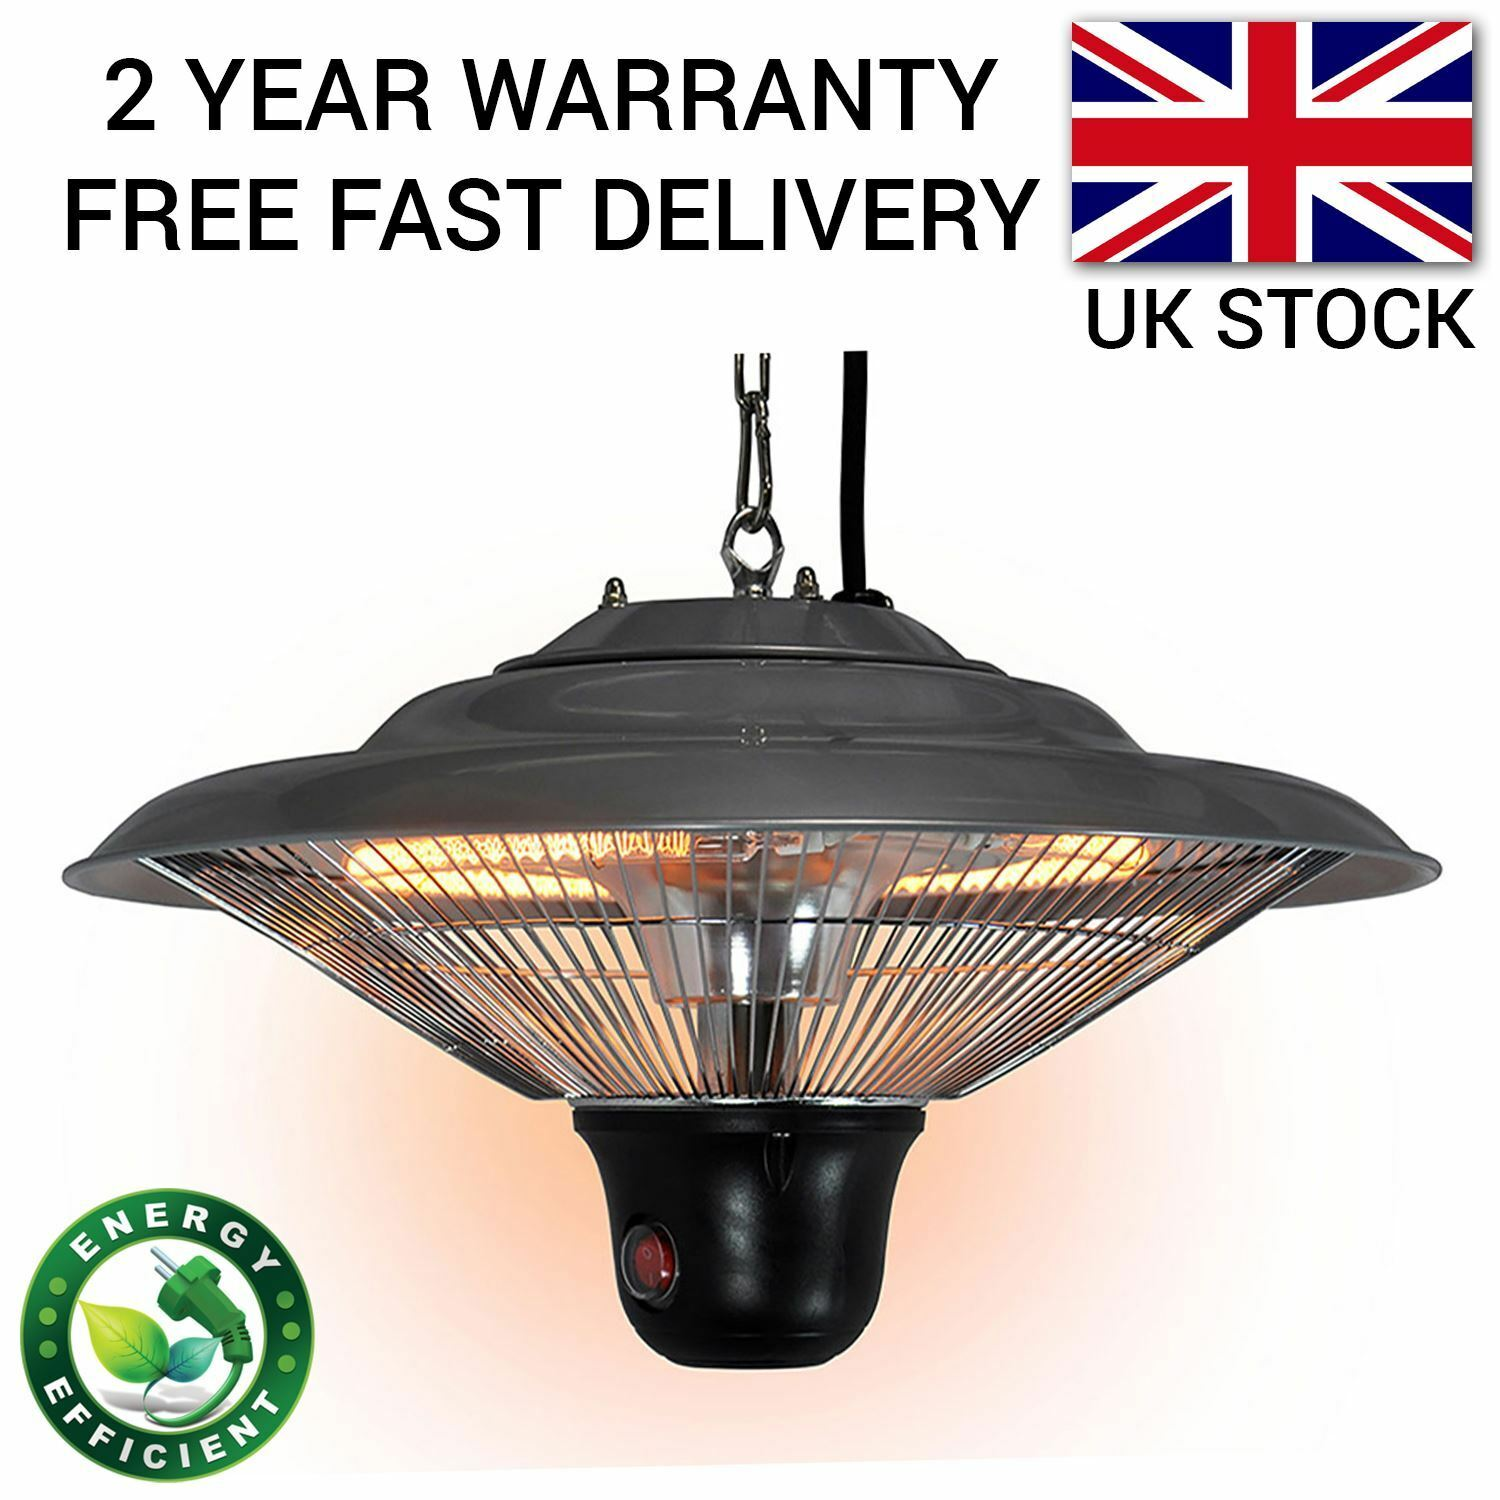 Patio Heater Outdoor Electric Garden Ceiling Hanging Infrared Halogen 1500W  1 Of 8FREE Shipping ...